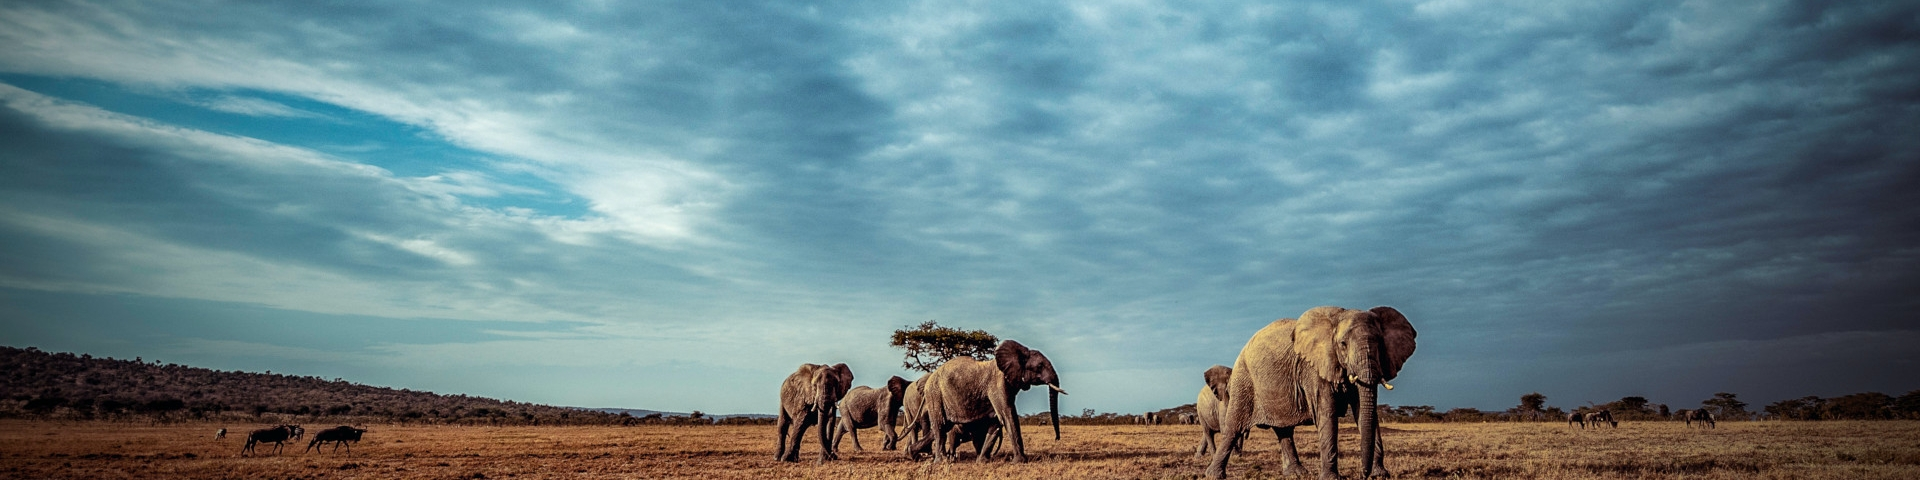 When to Visit Kenya Elephants on the Plains